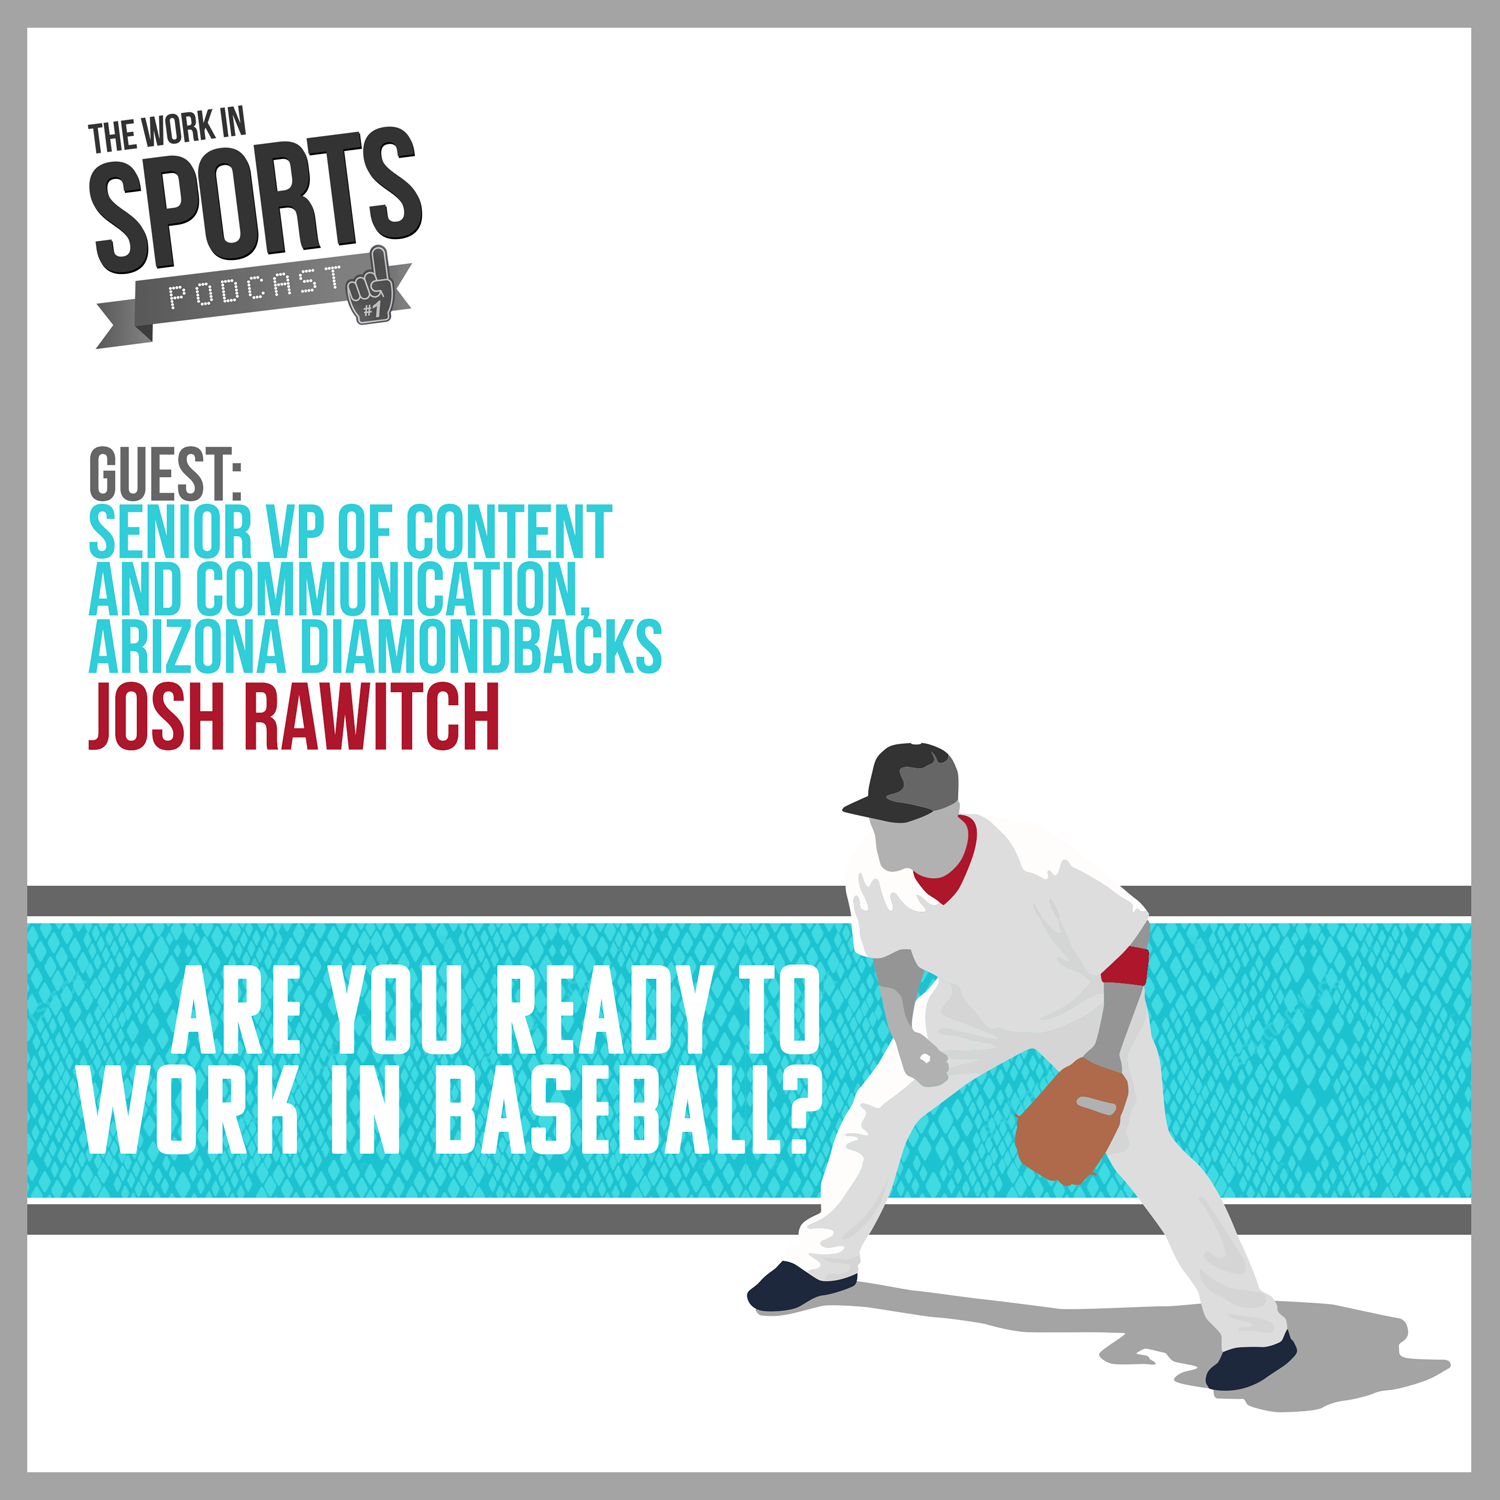 are you ready to work in baseball